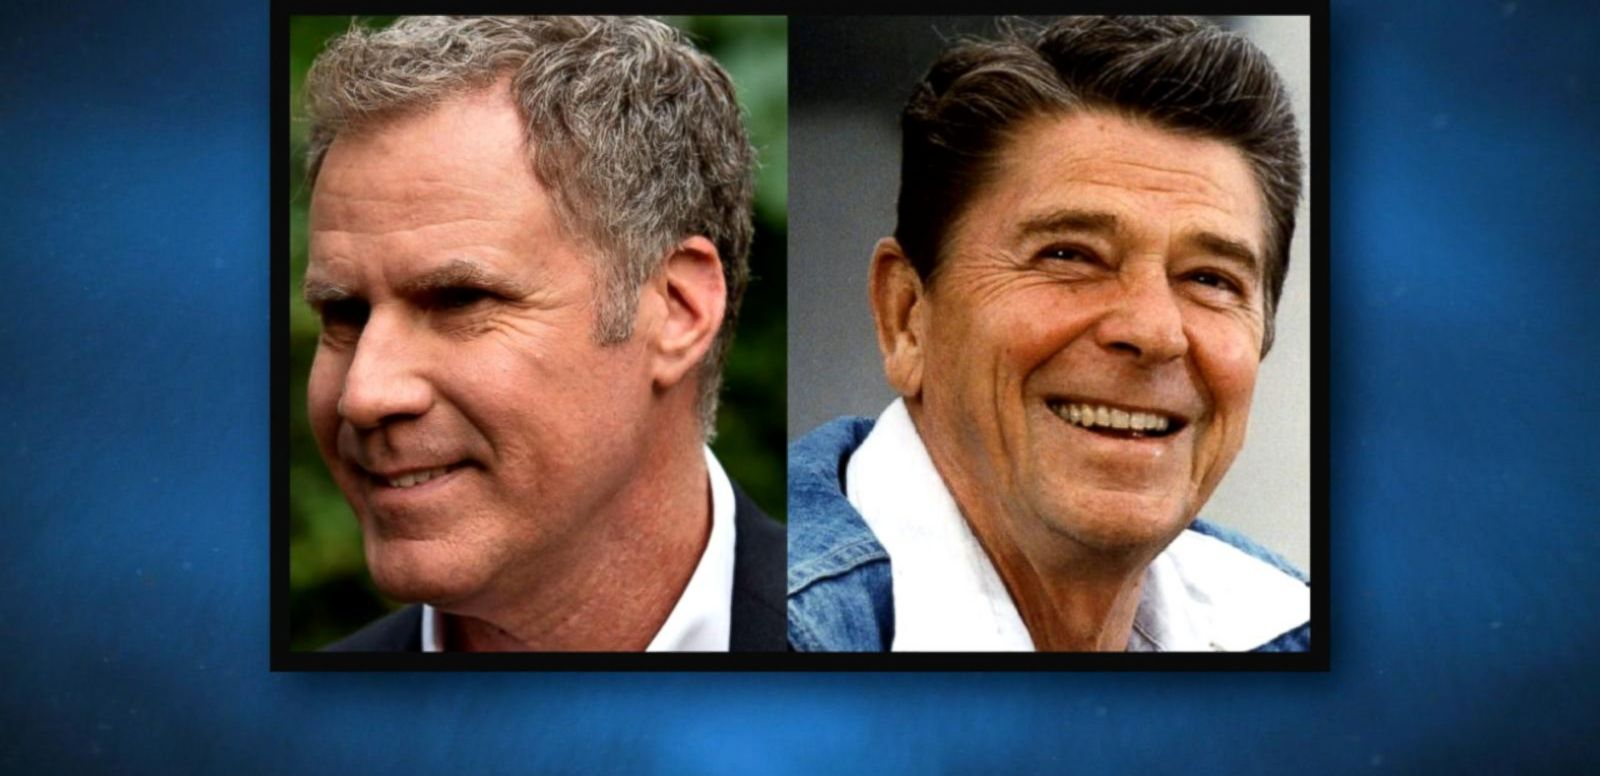 VIDEO: Will Ferrell Under Fire for Ronald Reagan Movie